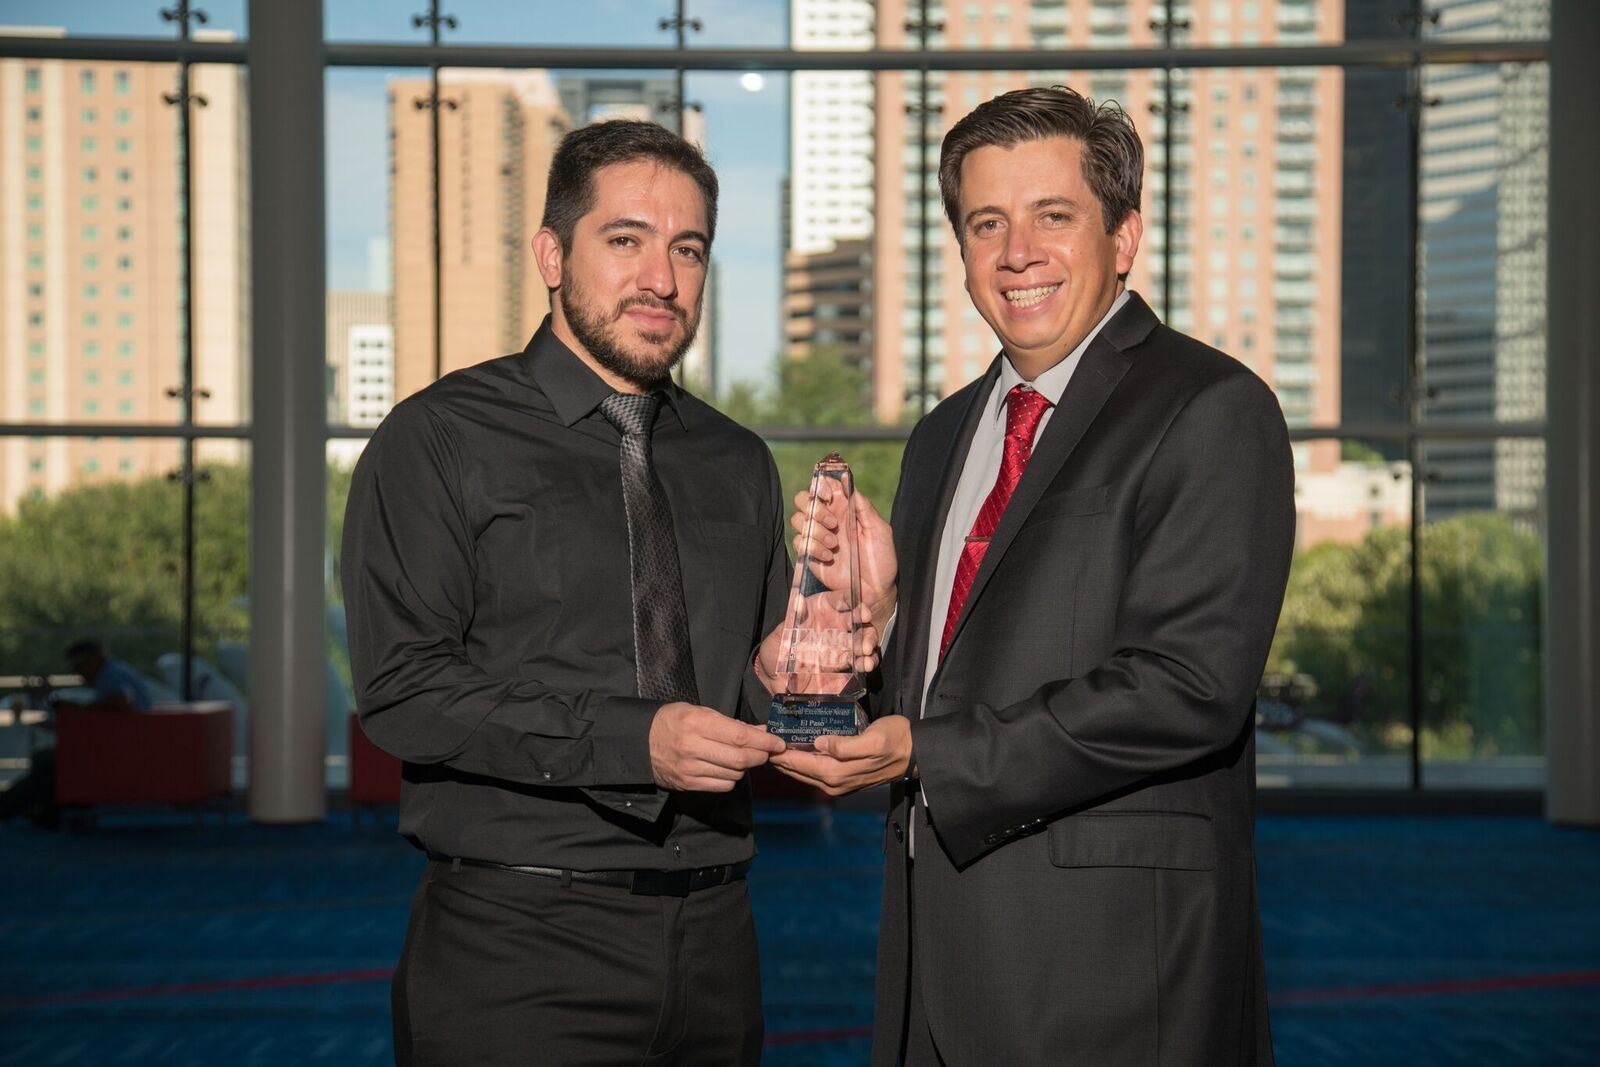 2 El Paso employees together holding award at event